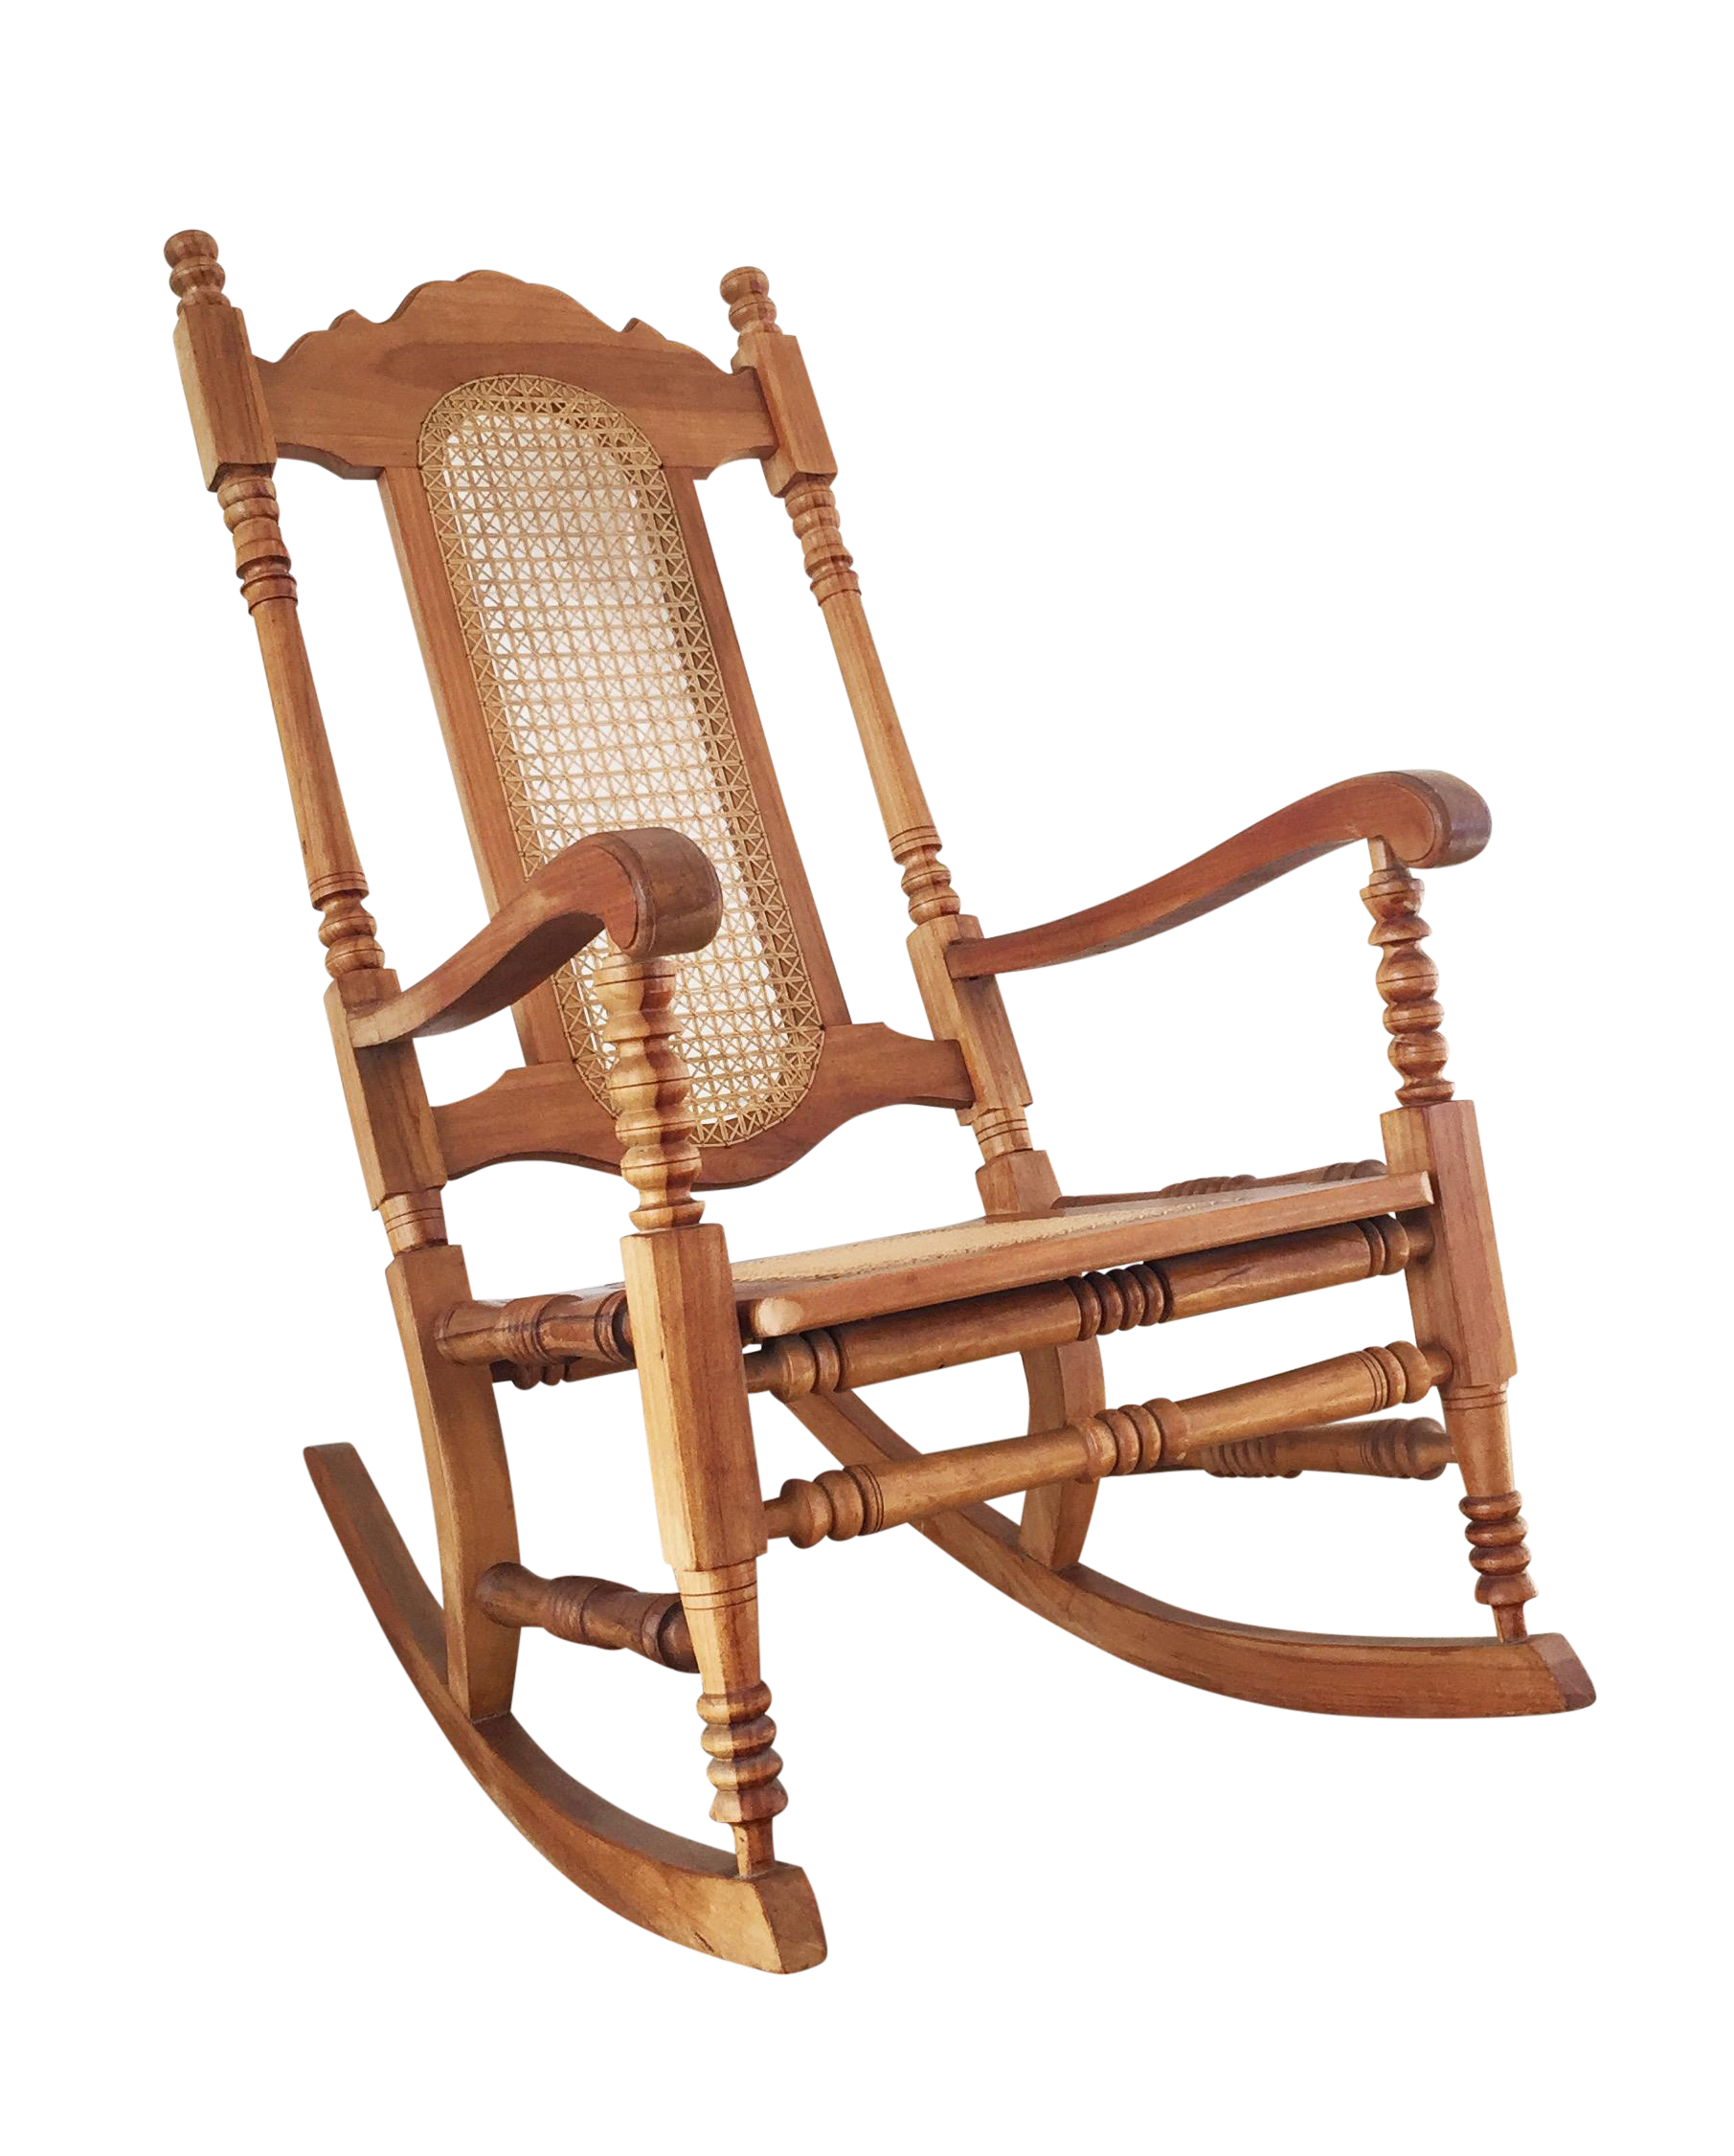 Wonderful Image Of Vintage Wood Cane Rocking Chair Chairish With 956736 Color And 1811x2252